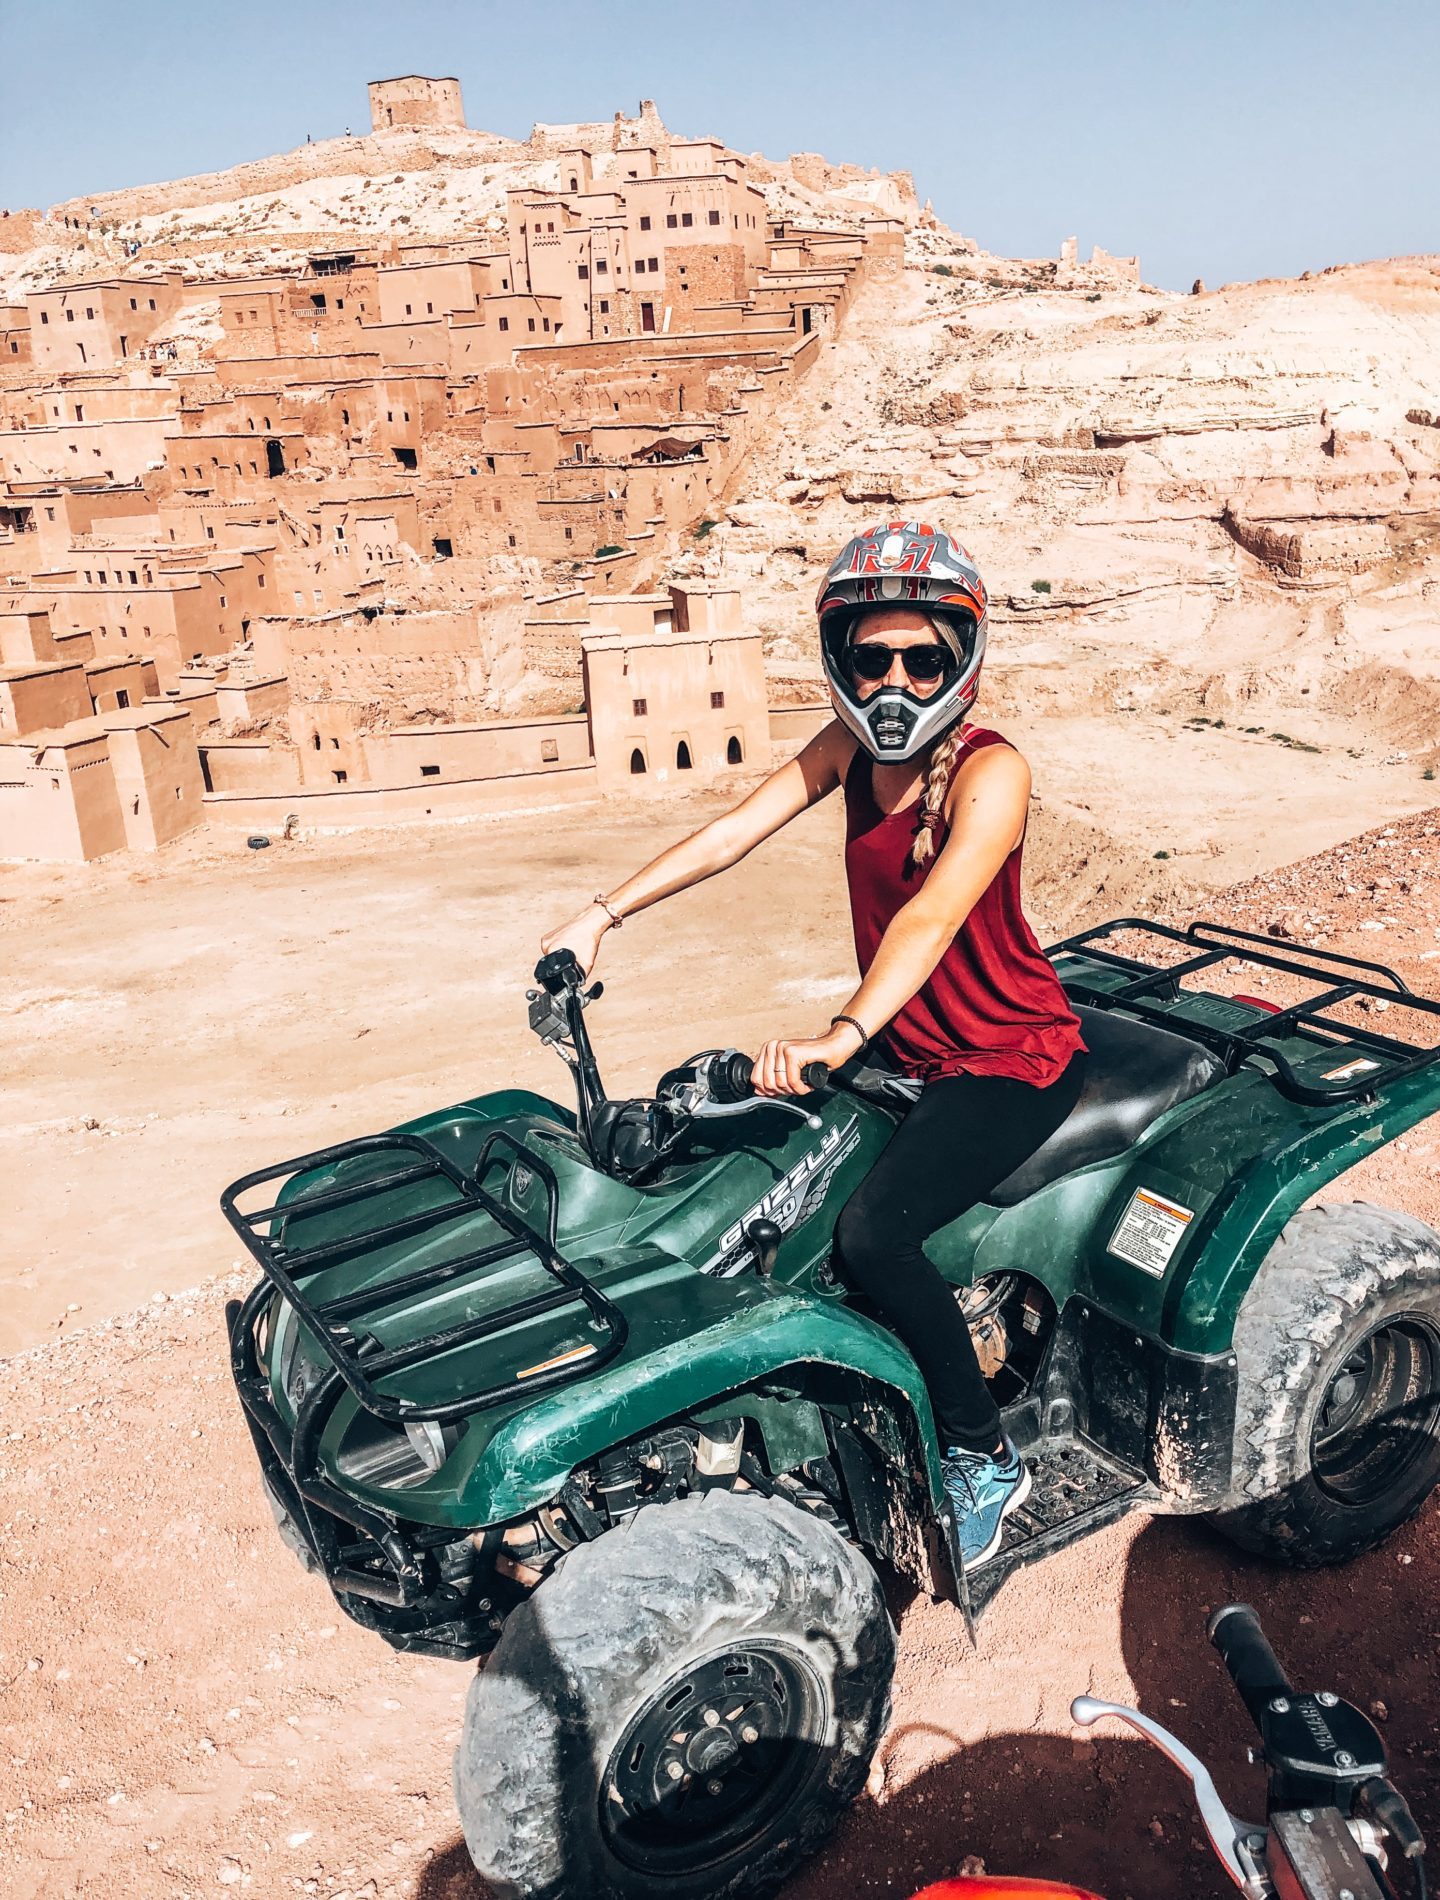 ATVing around Ben Ait Haddou in Morocco on We are travel girls trip